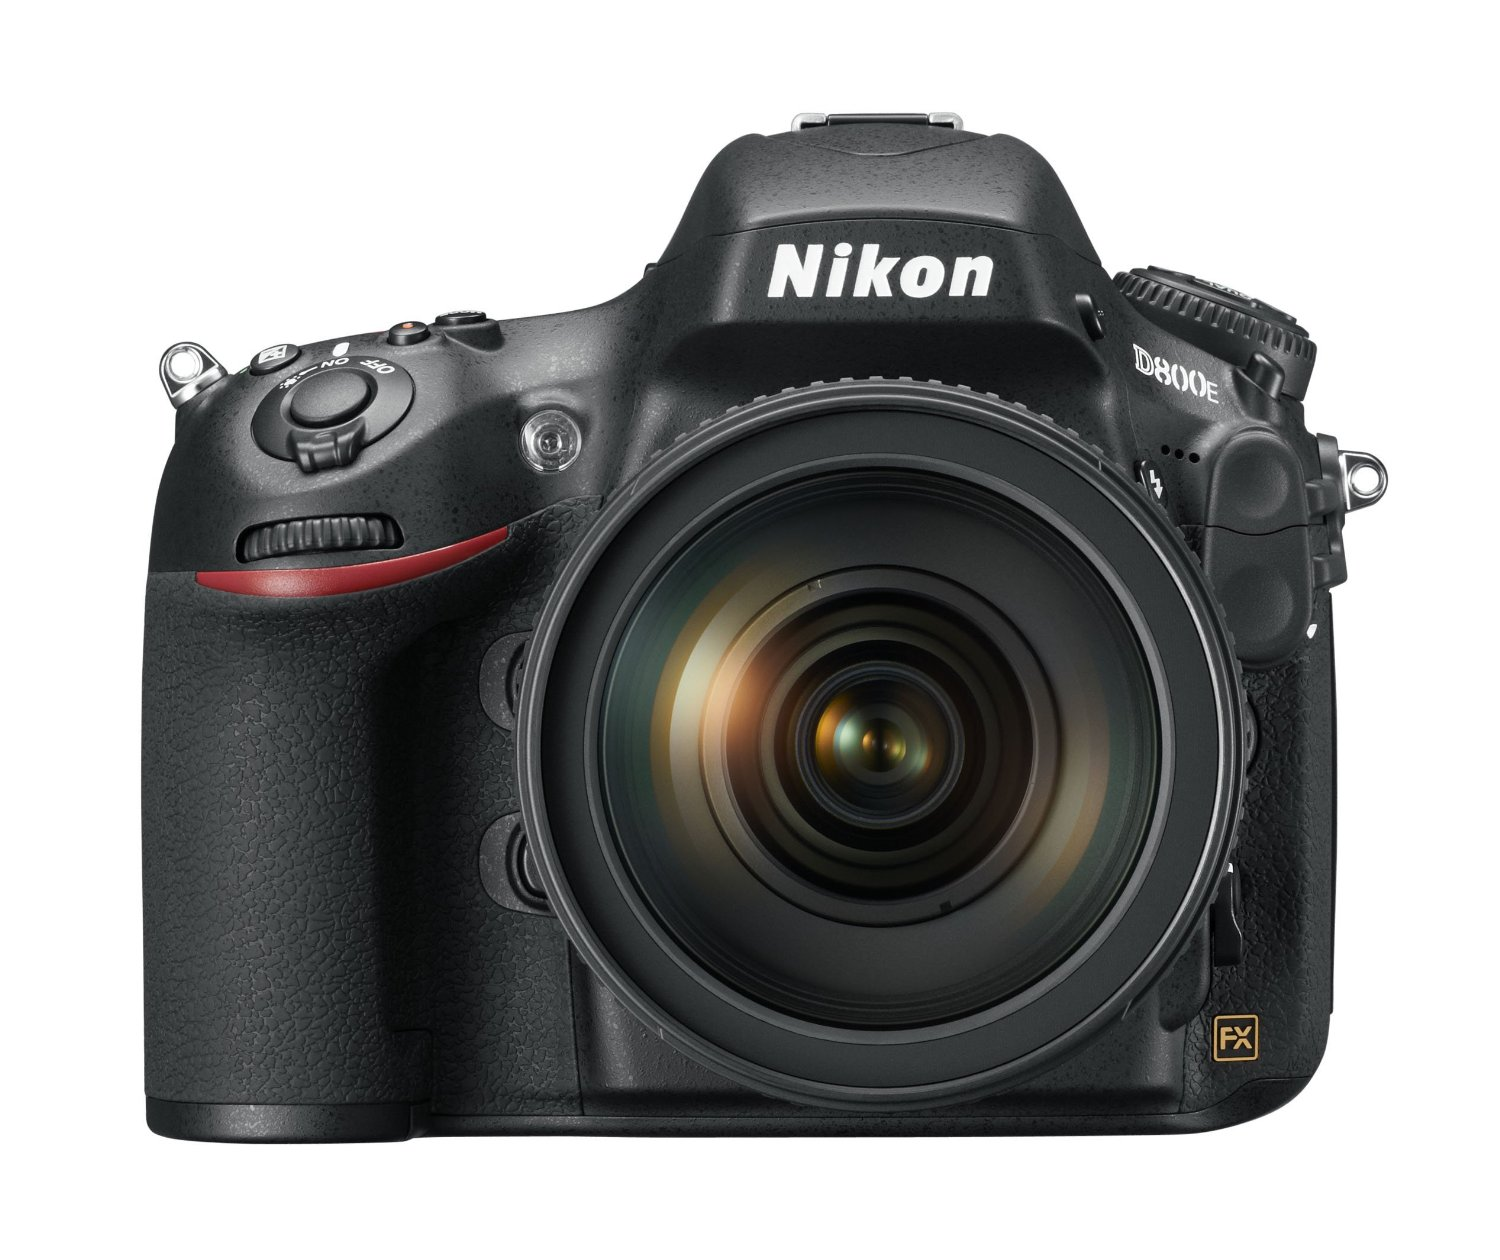 Nikon D800E 36.3 MP Digital SLR Camera